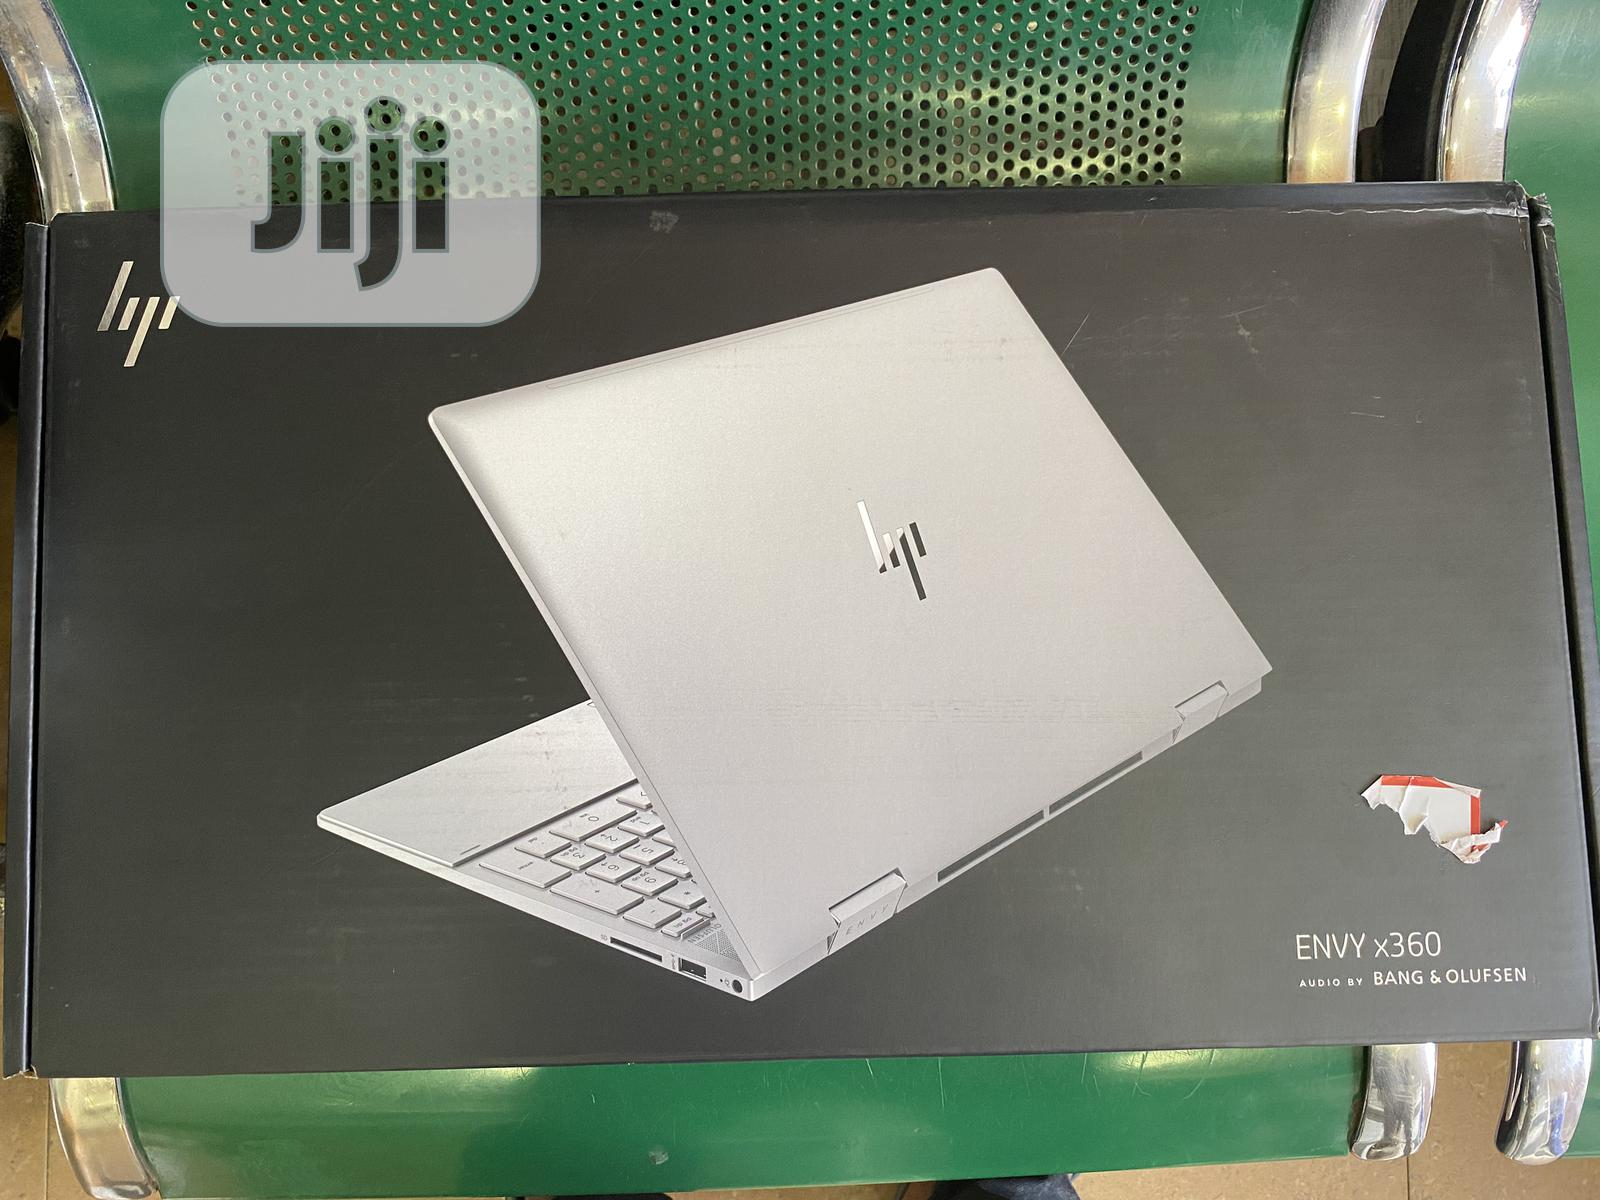 New Laptop HP Envy 15 12GB Intel Core I7 SSD 512GB | Laptops & Computers for sale in Ikeja, Lagos State, Nigeria